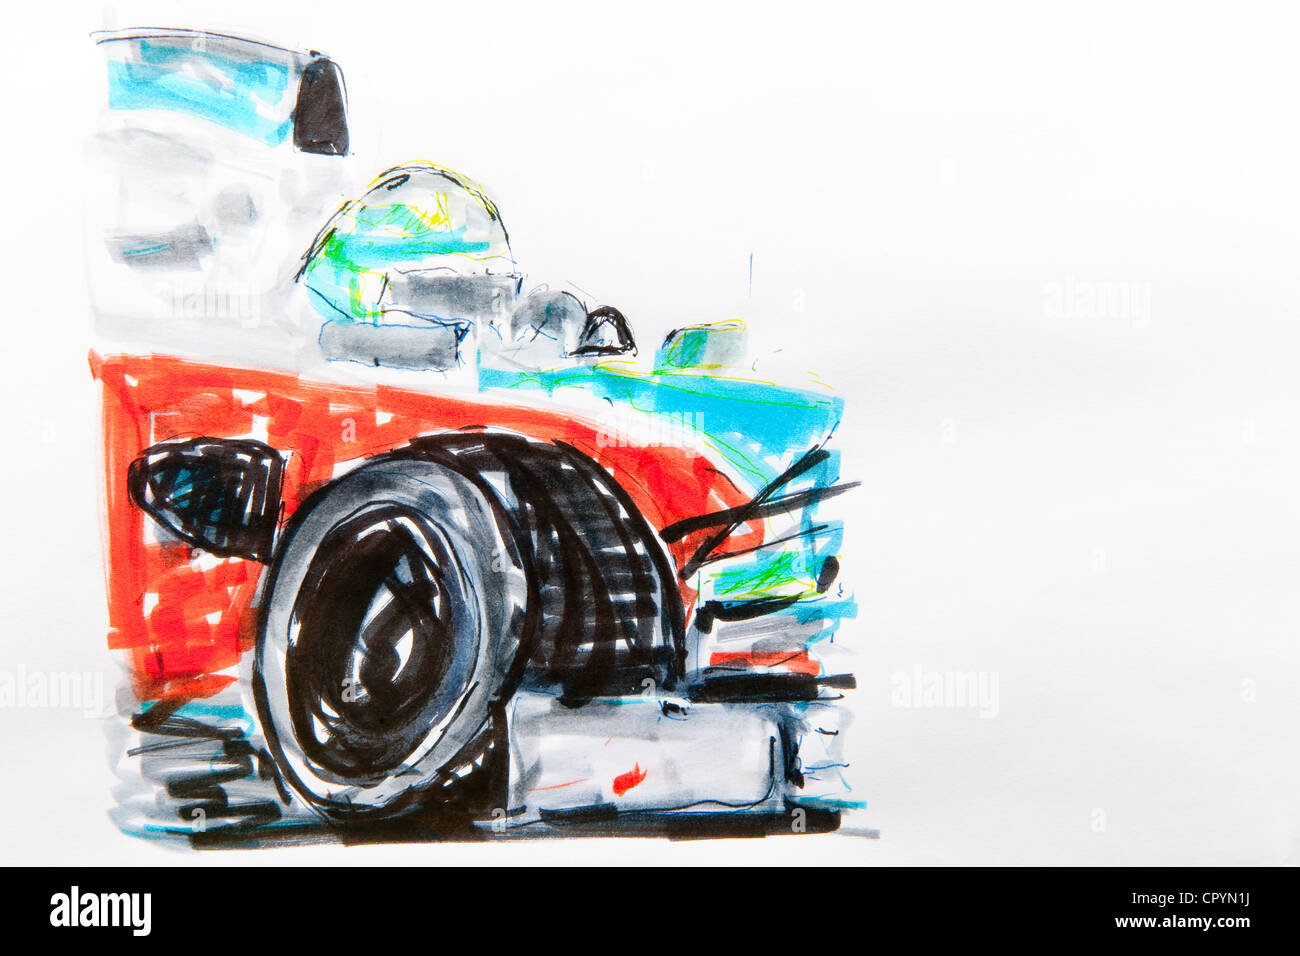 Formula One car, racing, drawing by Gerhard Kraus, Kriftel, Germany - Stock Image